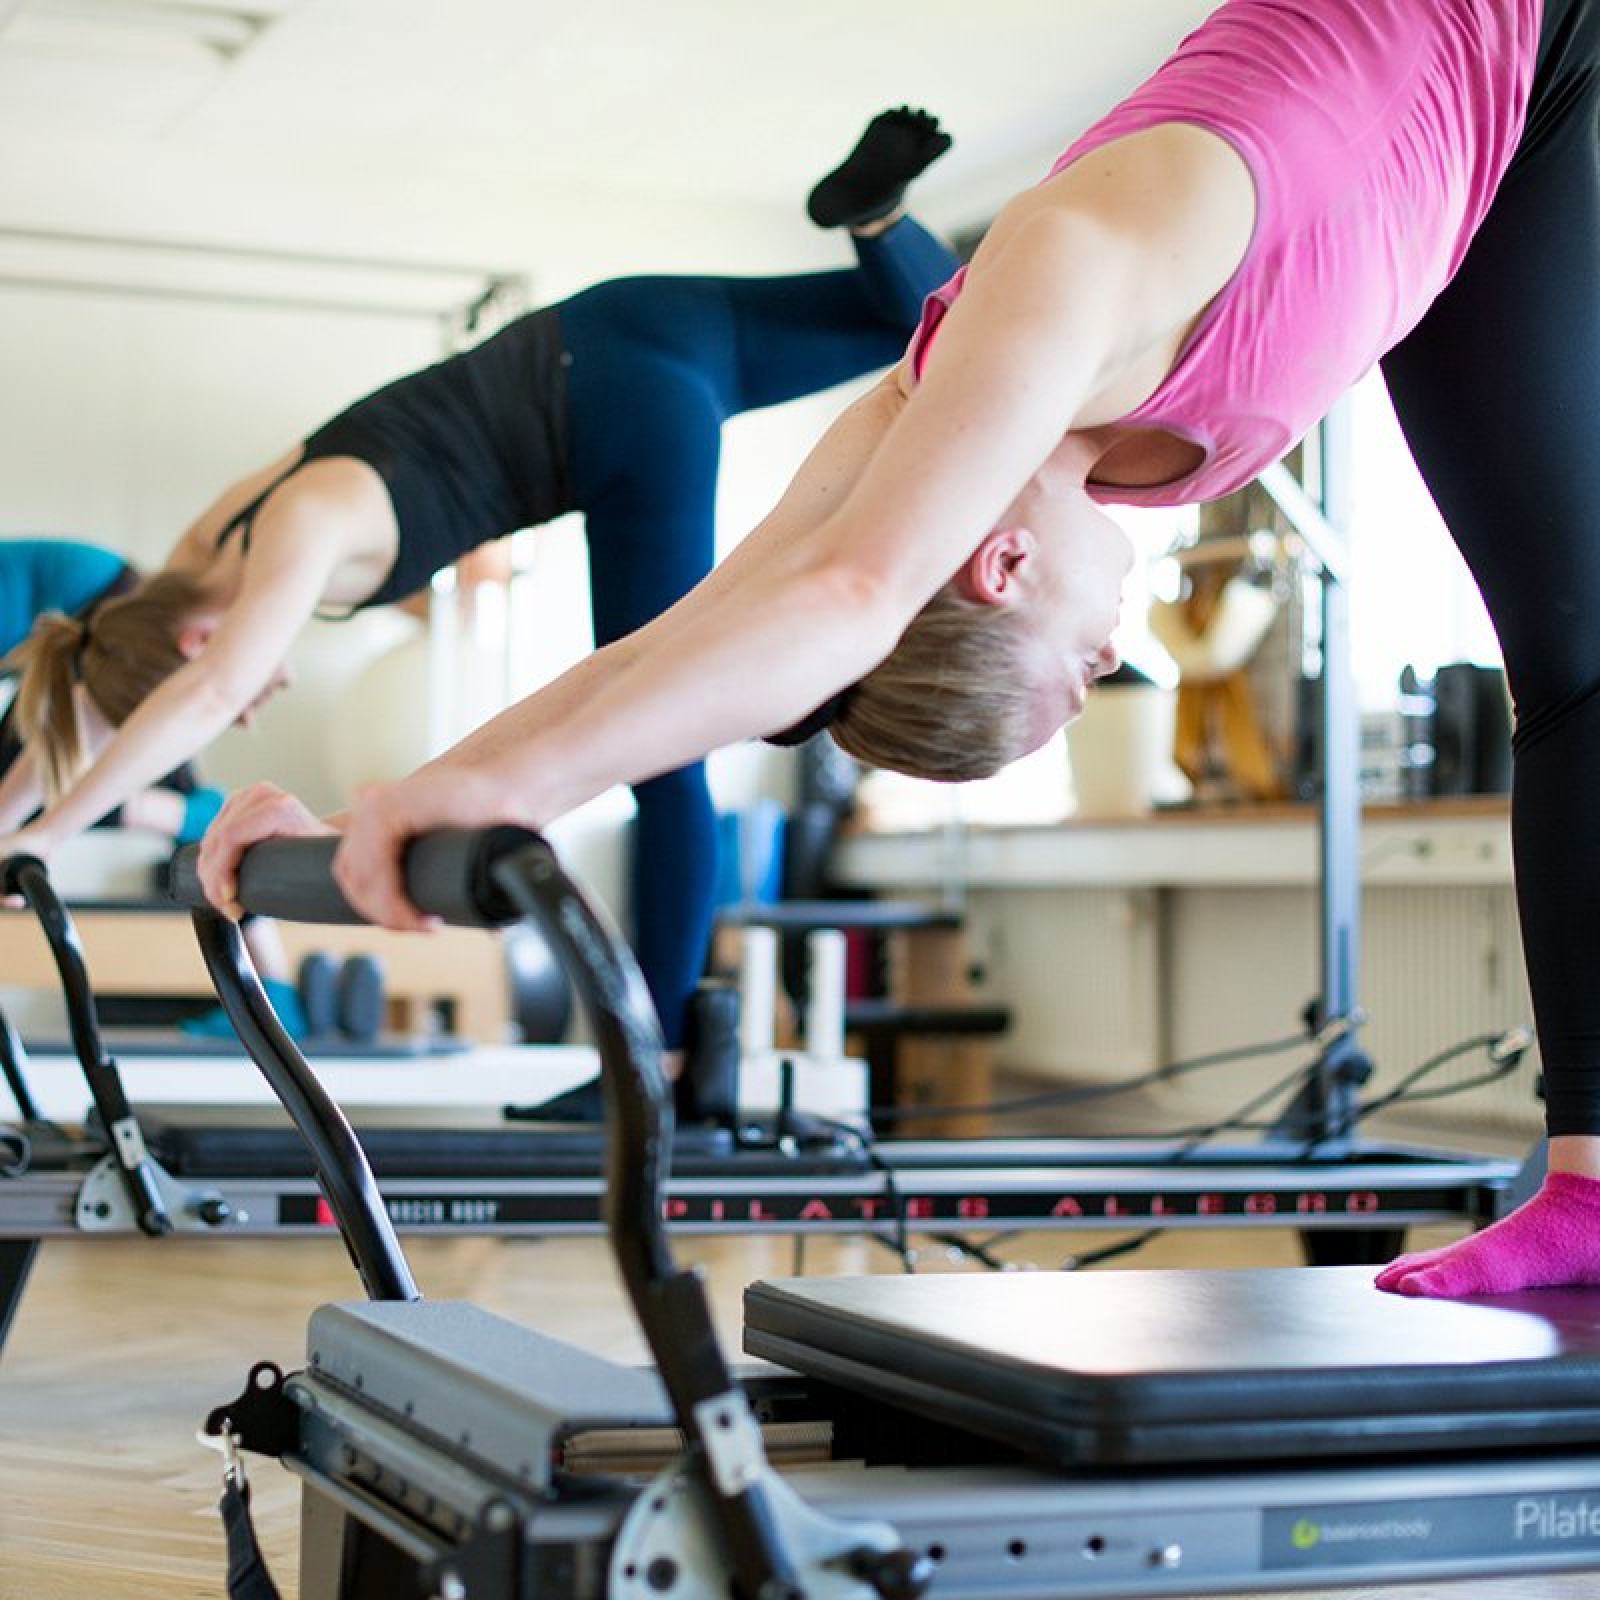 Workshop - Pilates reformer inspiration